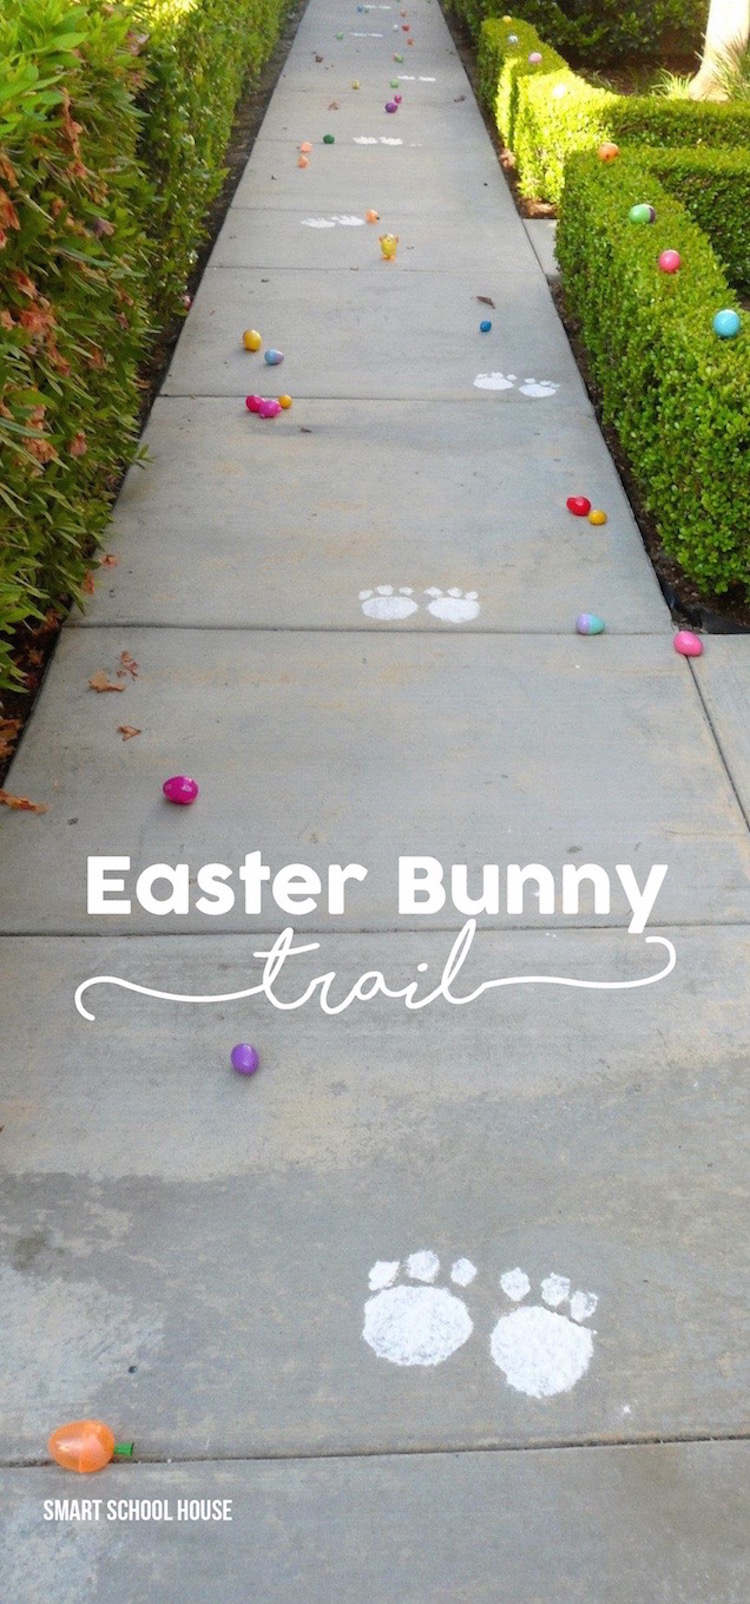 Easter Bunny Footprint Trail